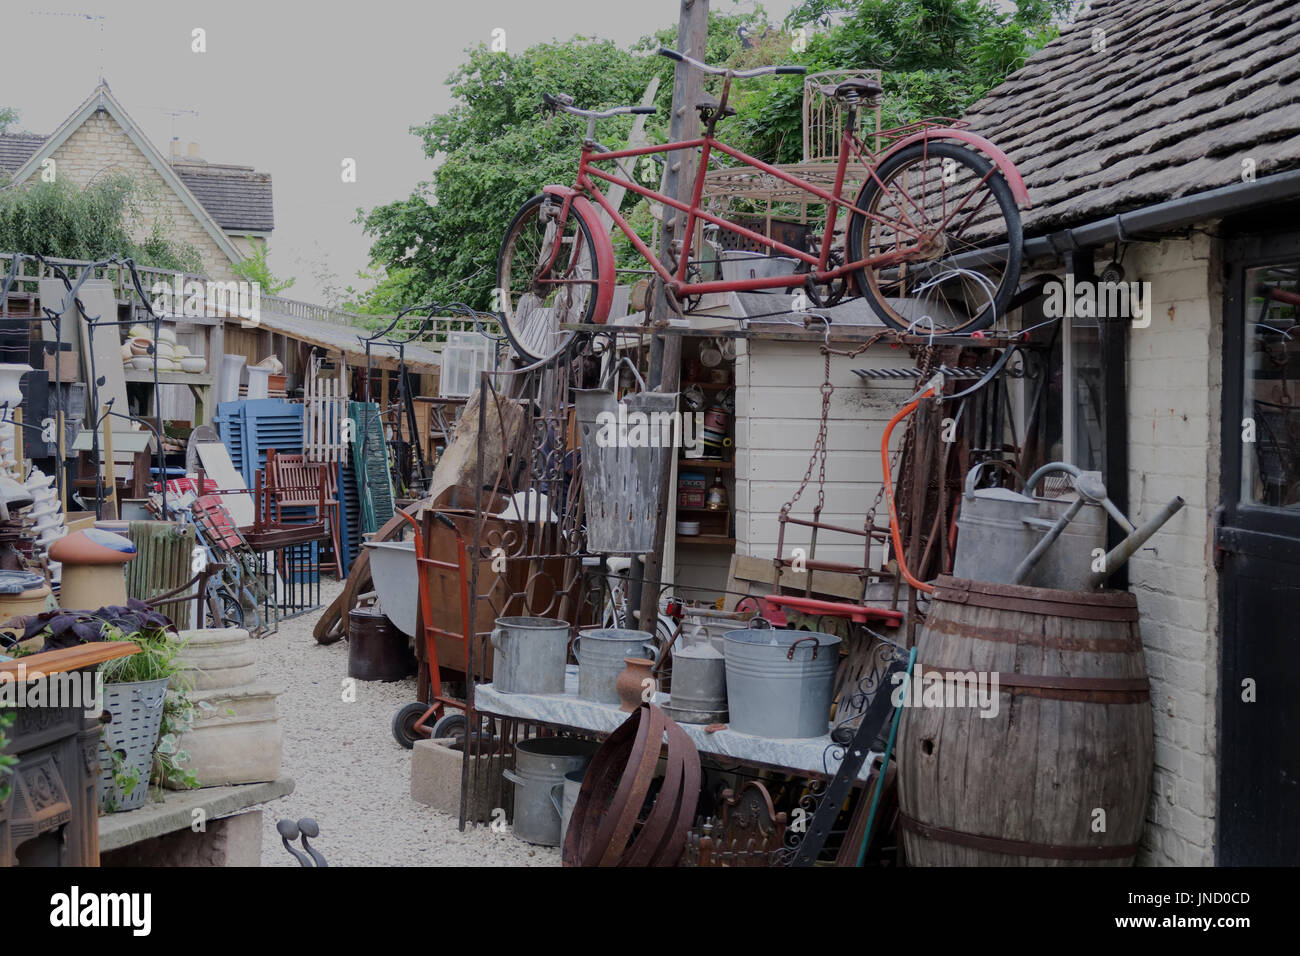 Untidy hoarders yard, Lechlade on Thames - Stock Image